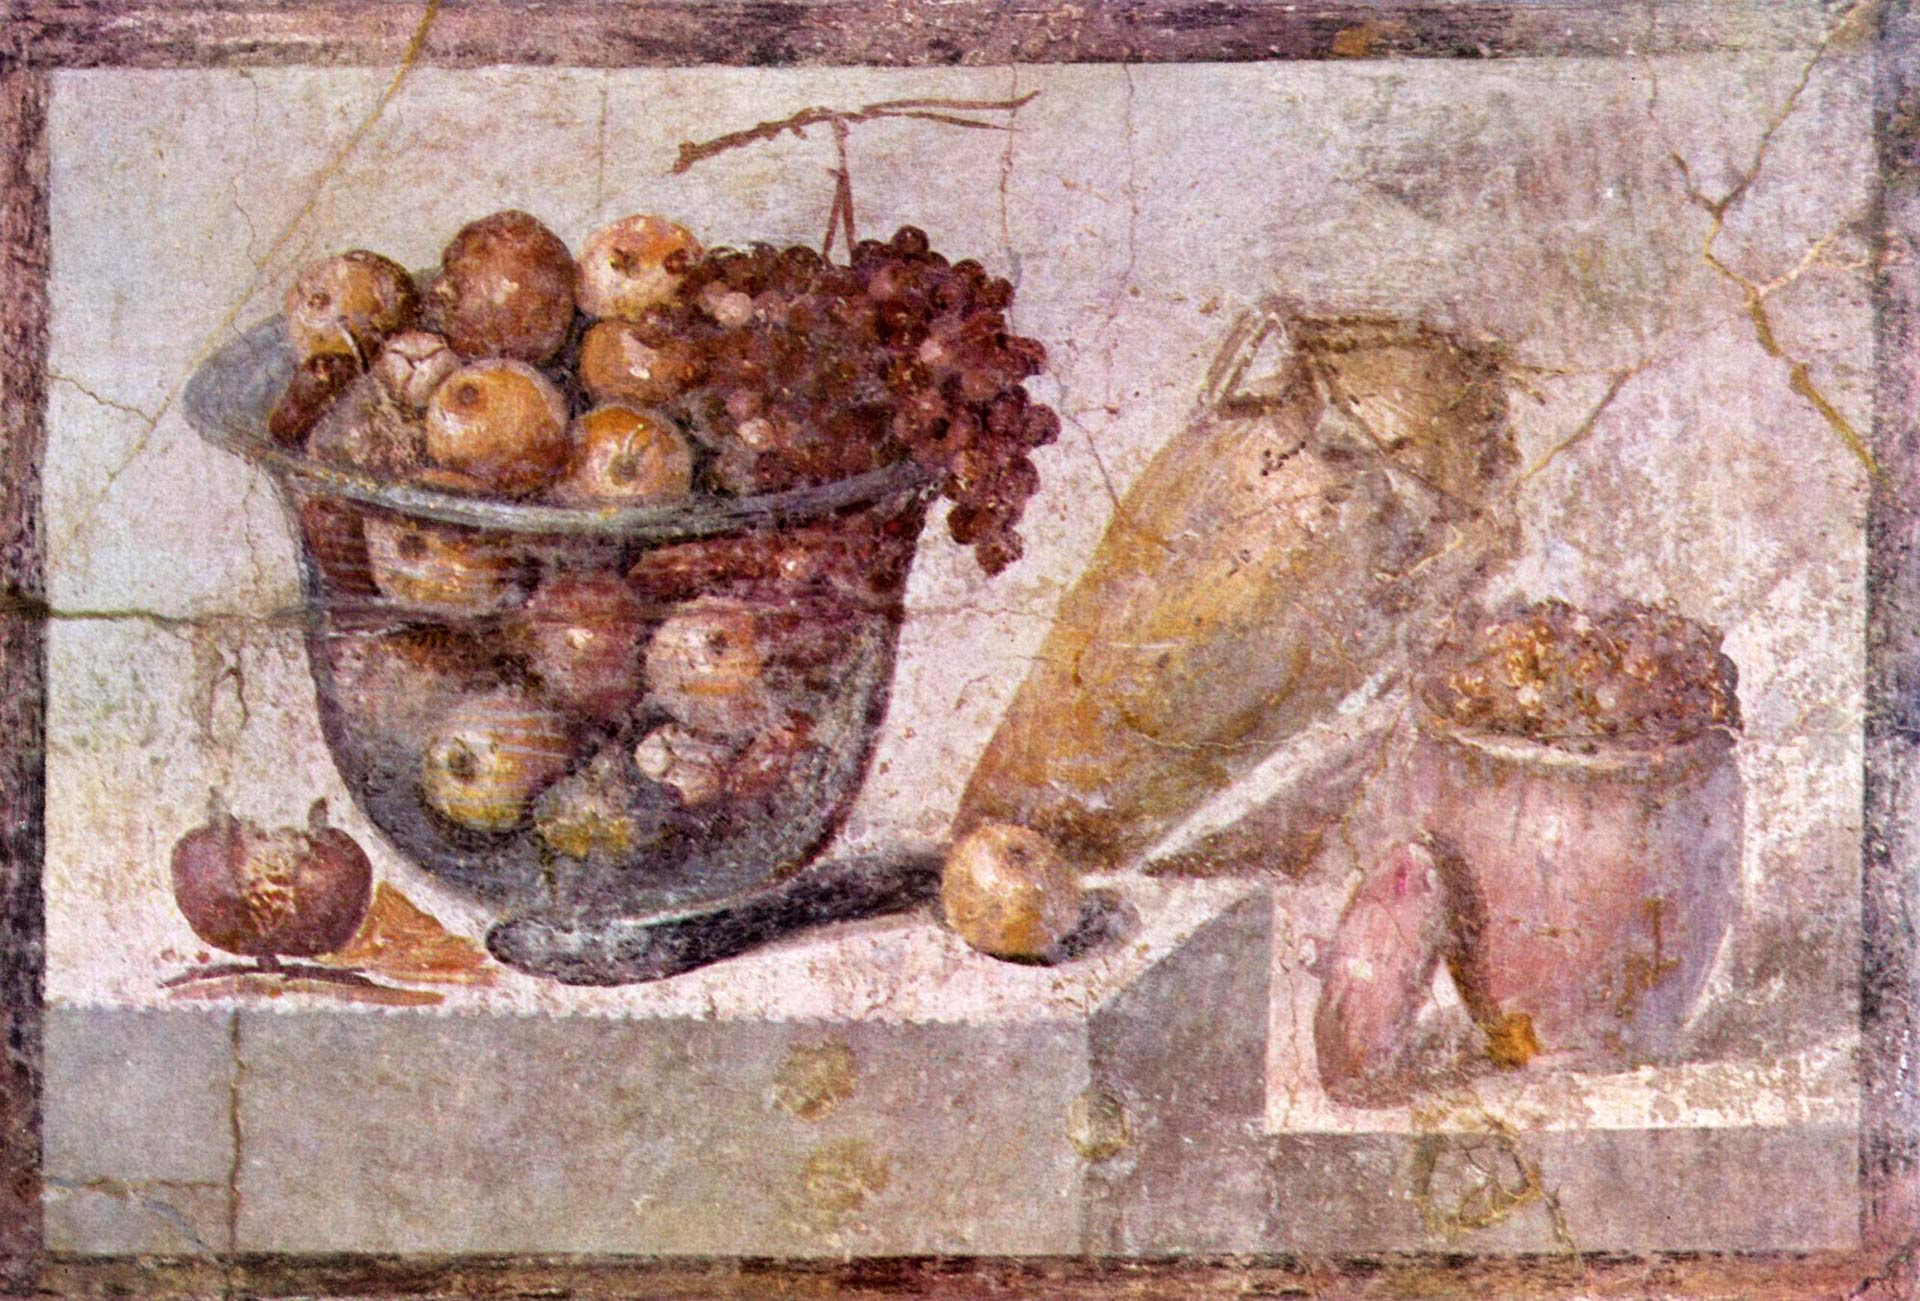 Citrus Fruits Were Symbols Of High Social Status In Ancient Rome